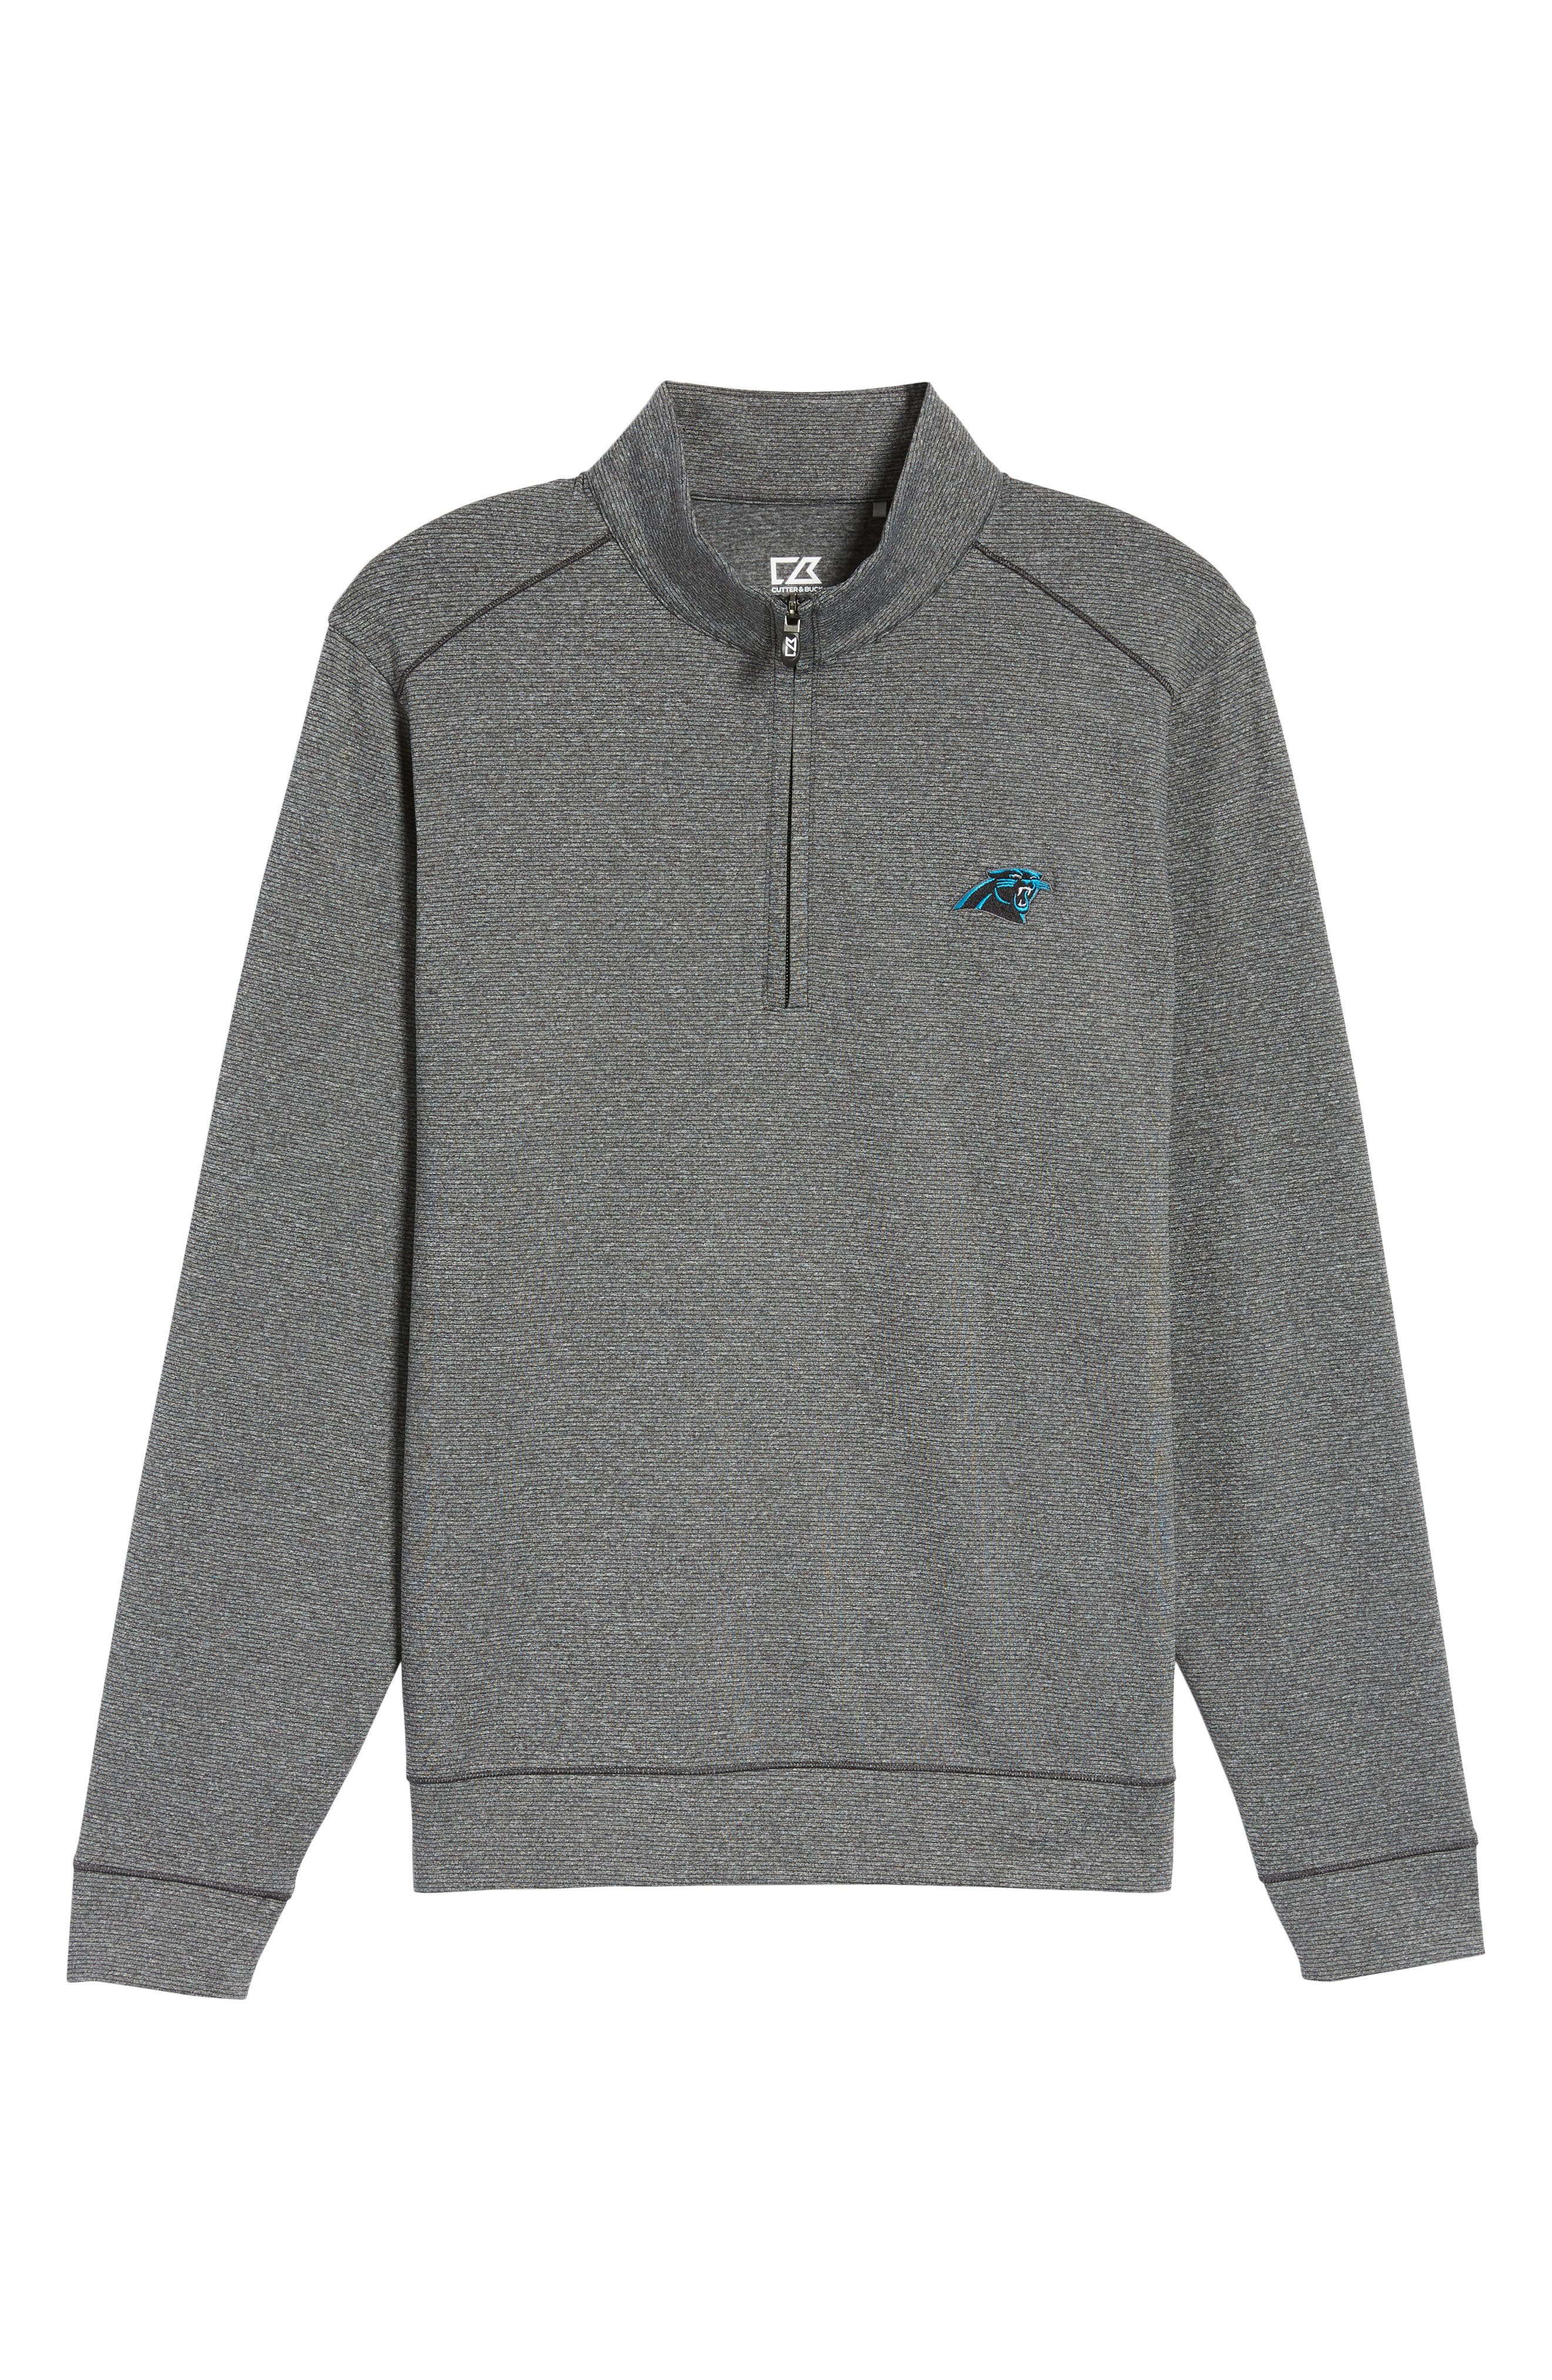 Shoreline - Carolina Panthers Half Zip Pullover,                             Alternate thumbnail 6, color,